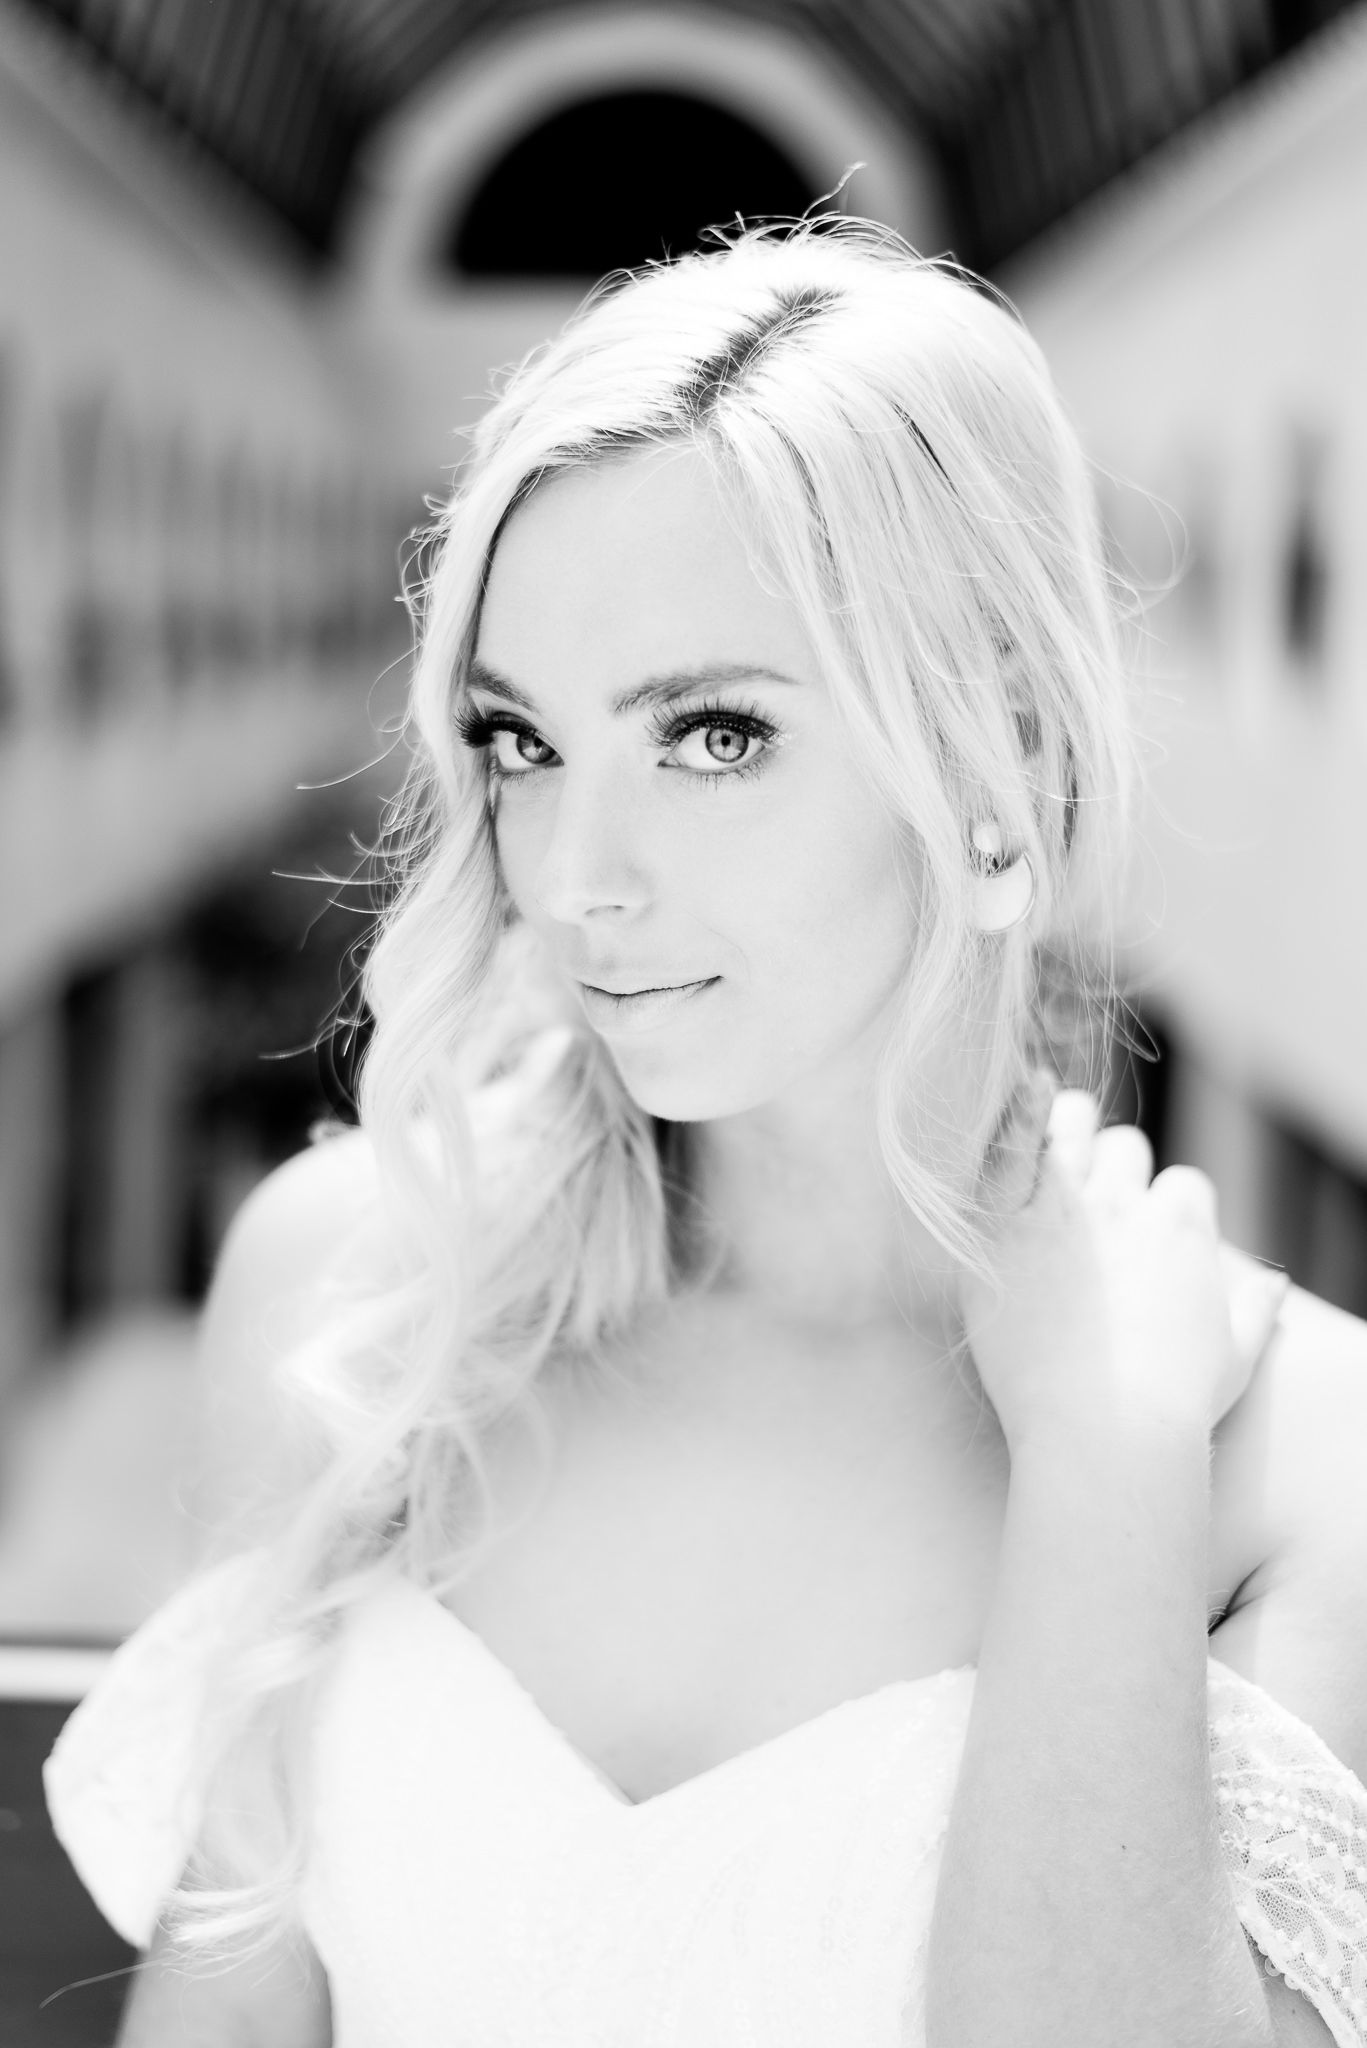 black and white photo of a blonde bride staring into camera at The Center Cincinnati spring wedding